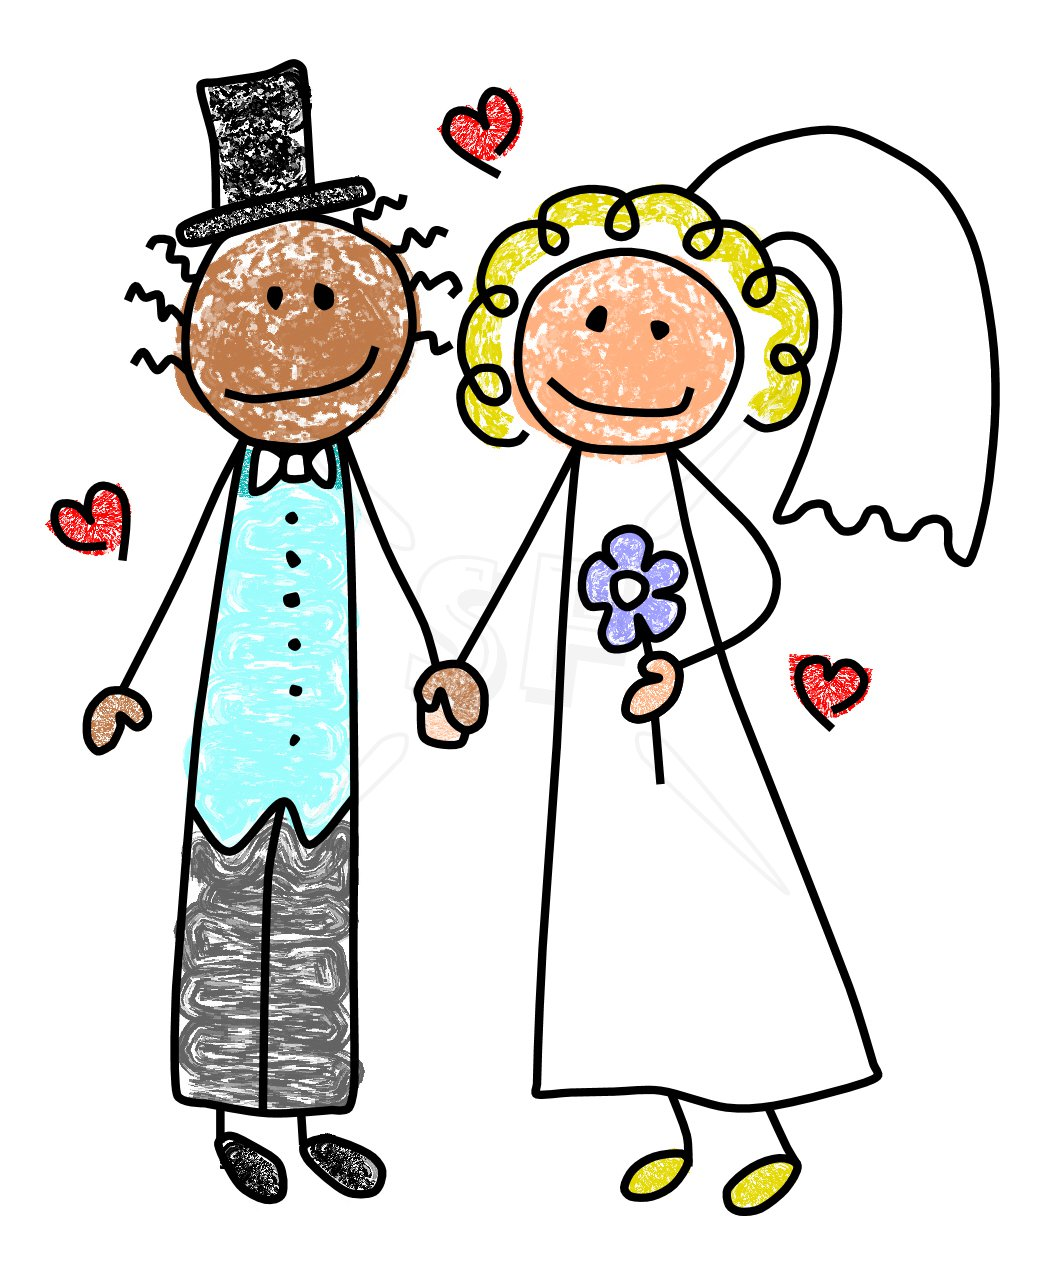 And groom silhouette at. Bride clipart bridegroom